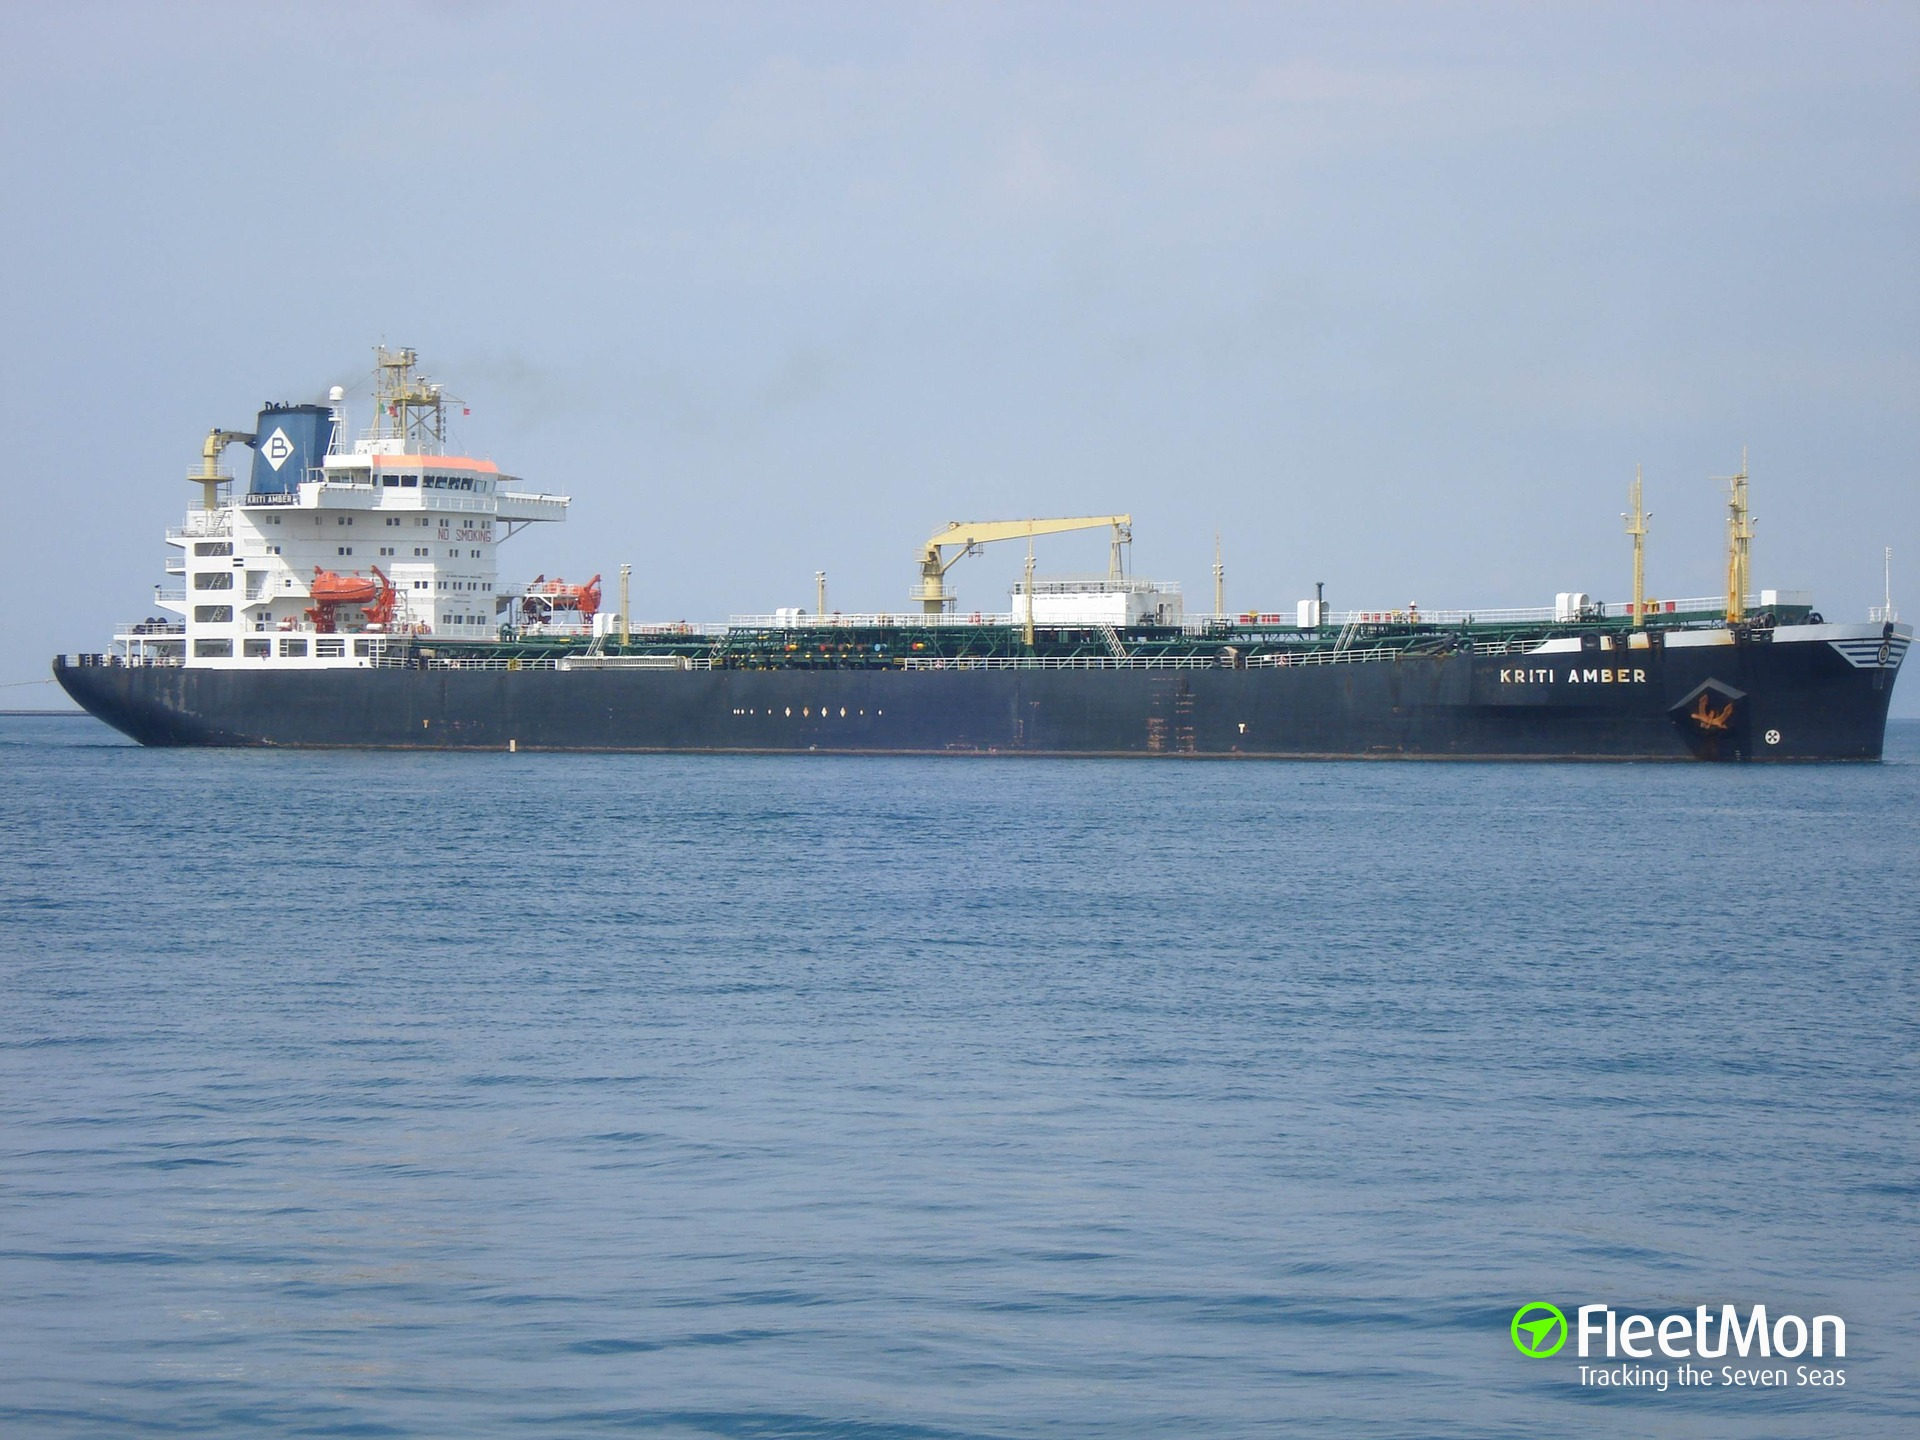 ​  MT KRITI AMBER towed to Piraeus after engine breakdown